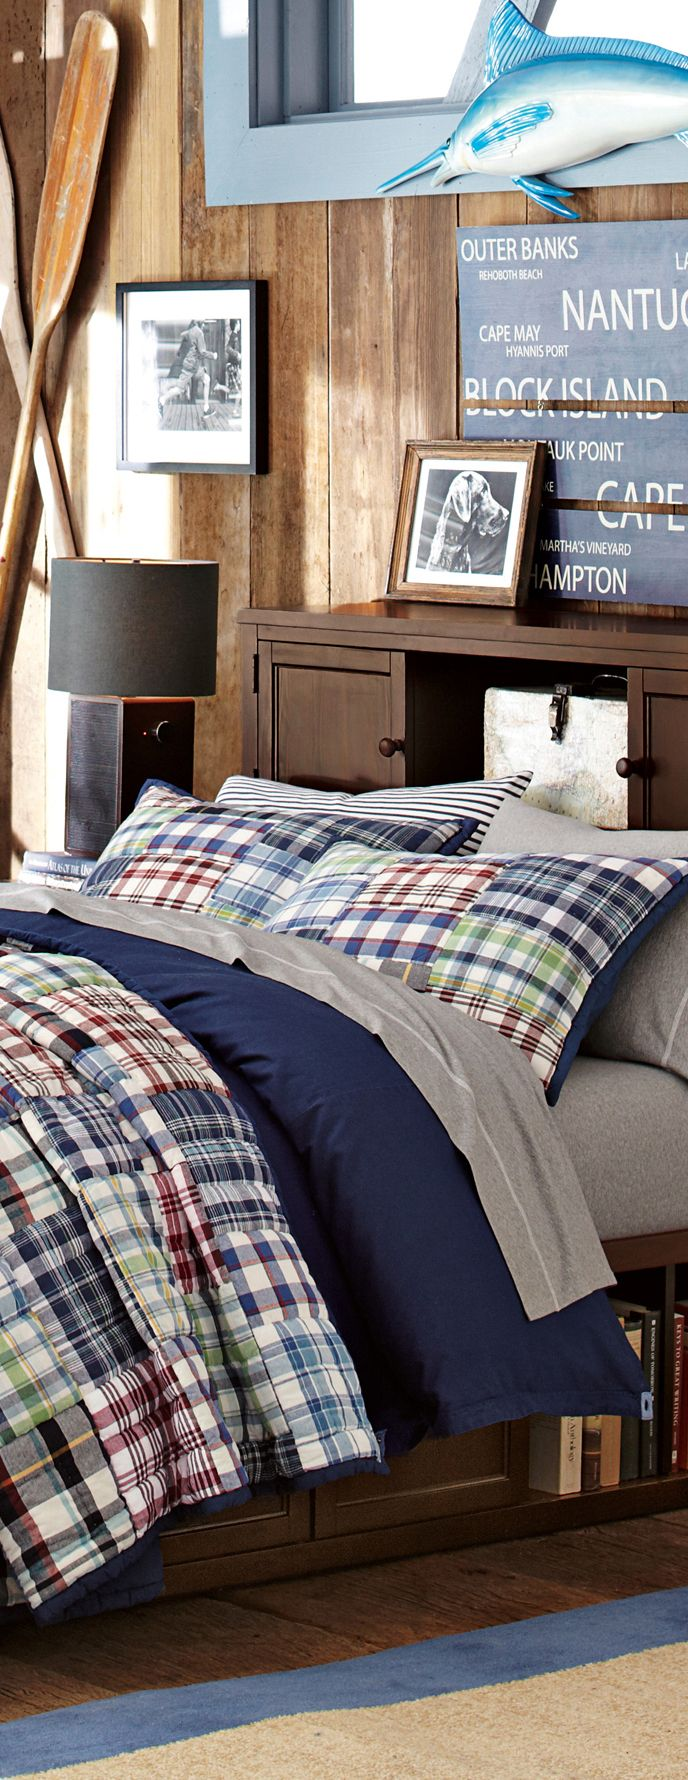 Boy plaid bedding - Looking For Boys Bedding Find A Huge Selection Of Boys Comforters Quilts And Duvet Covers From All The Best Online Brands From Toddler To Teen